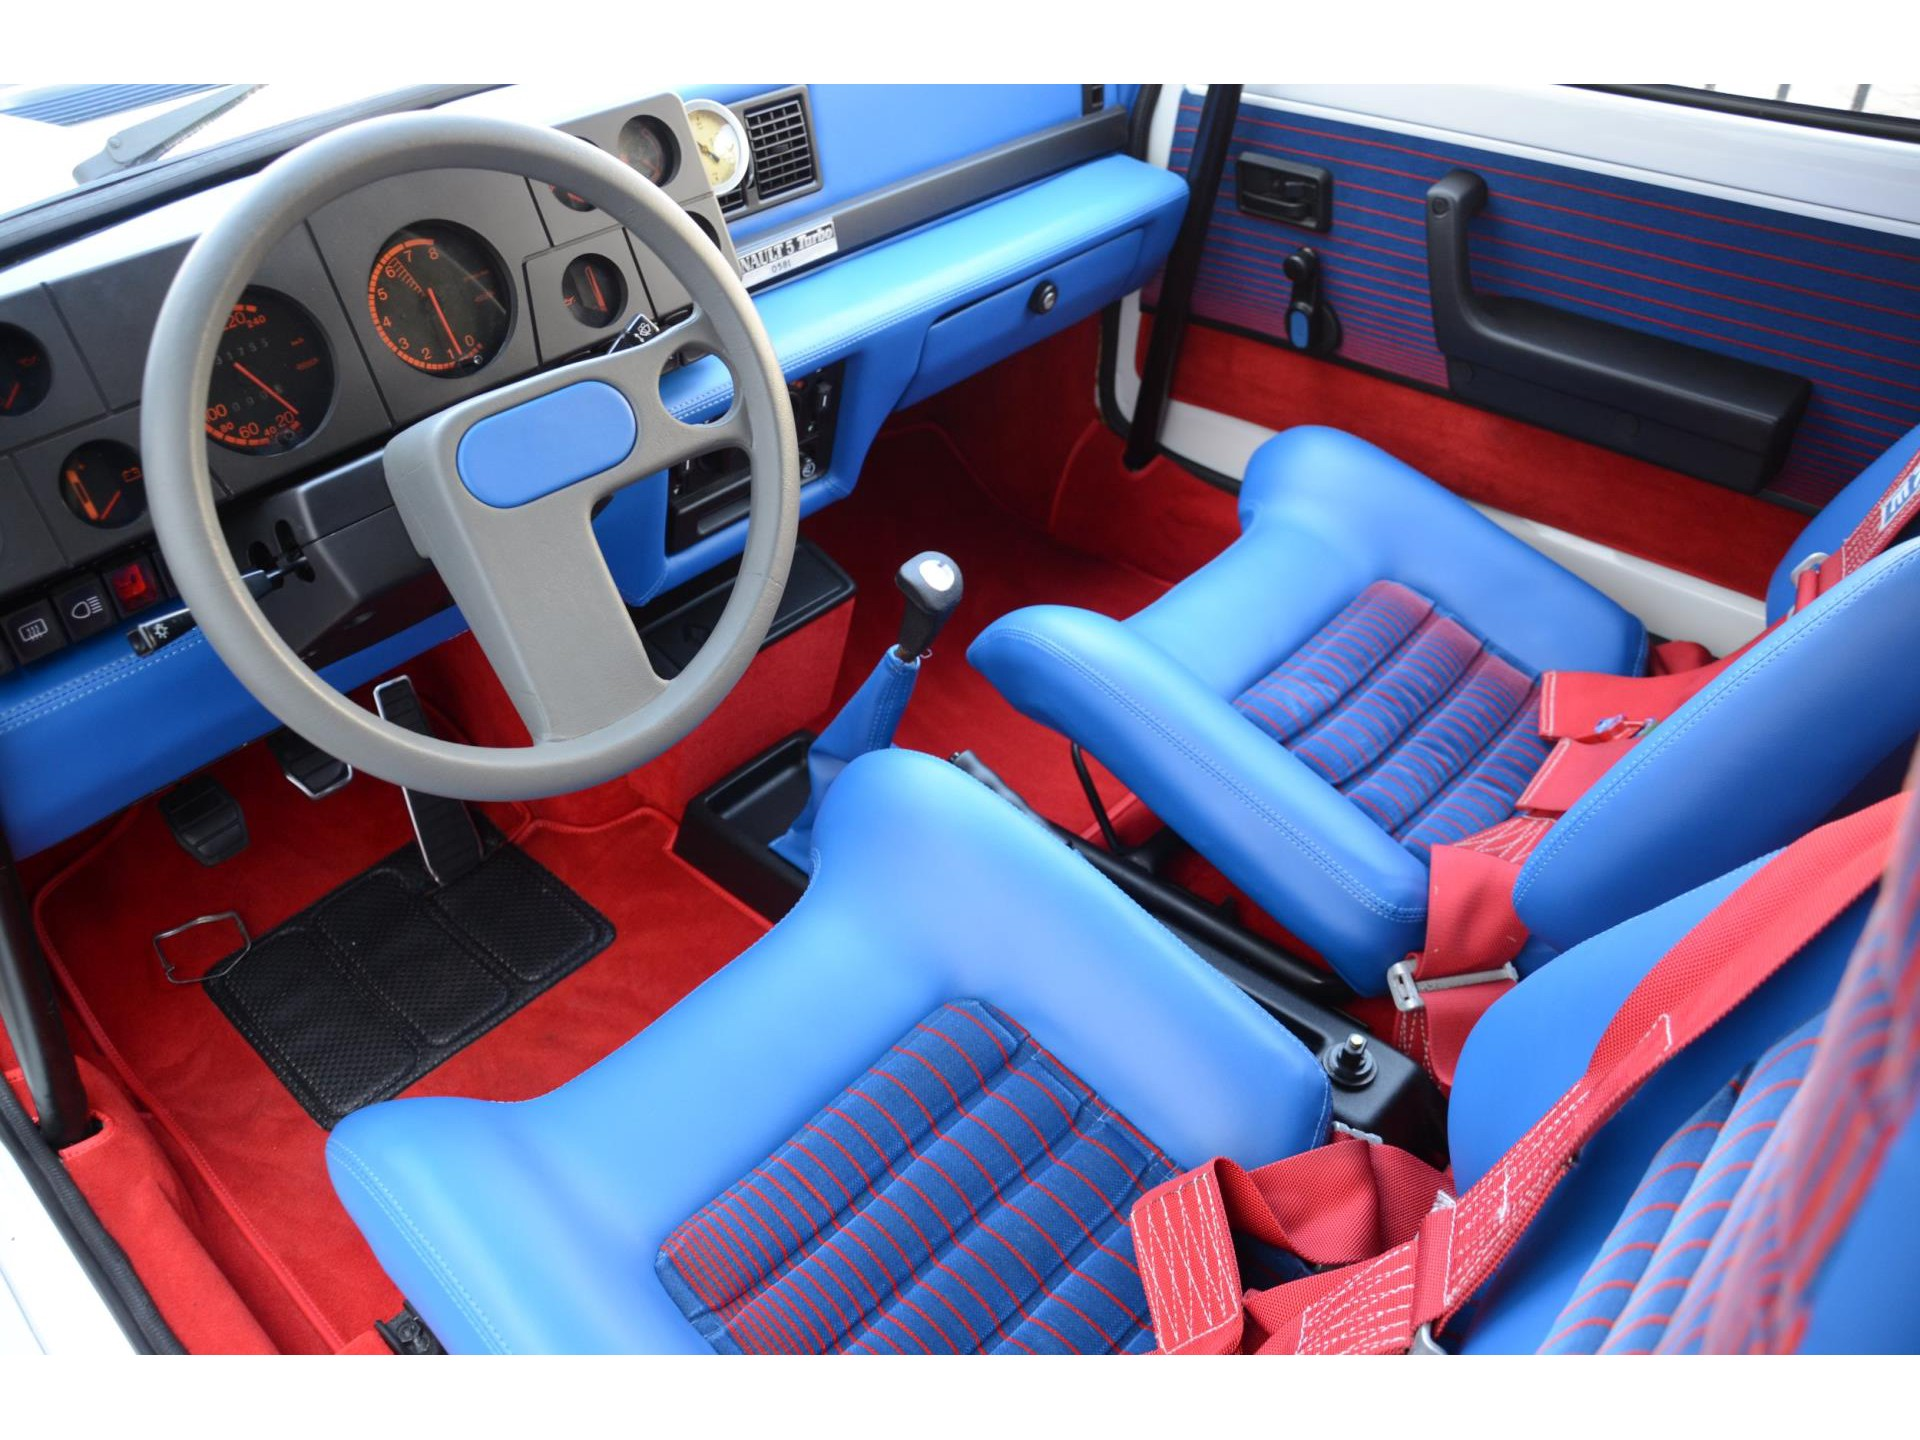 Renault-5-Turbo-Series-1-for-sale-41